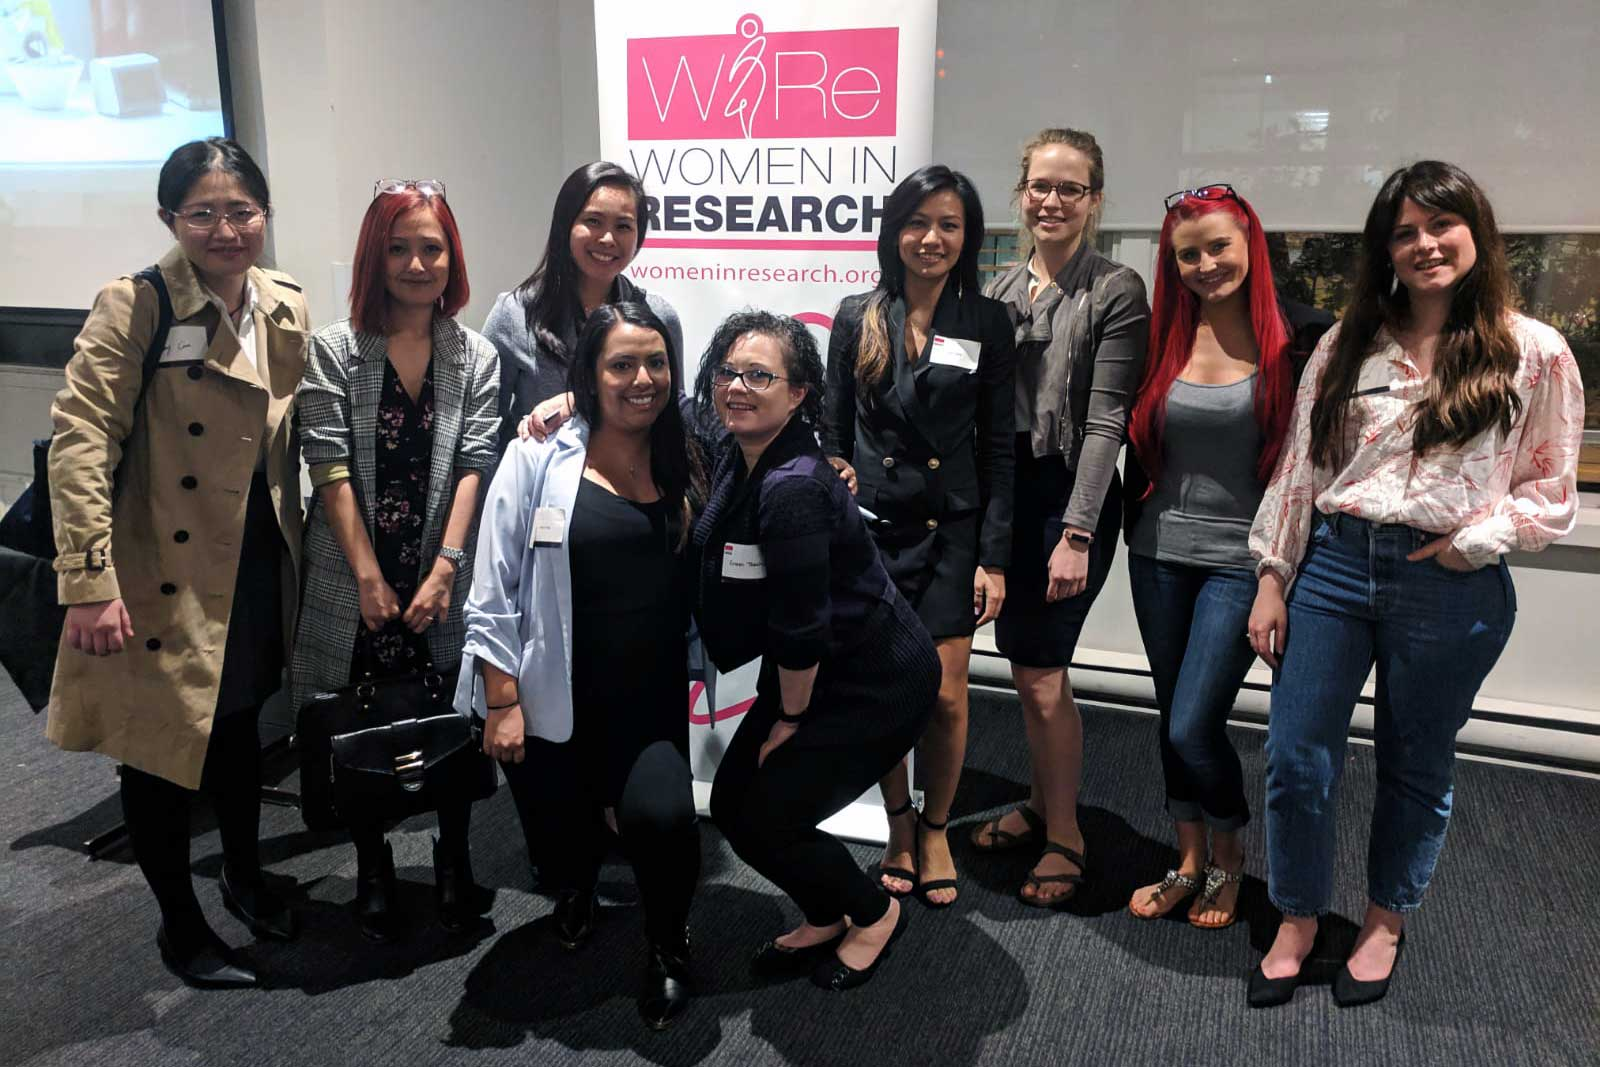 A group of women posing in front of a Women in Research Banner